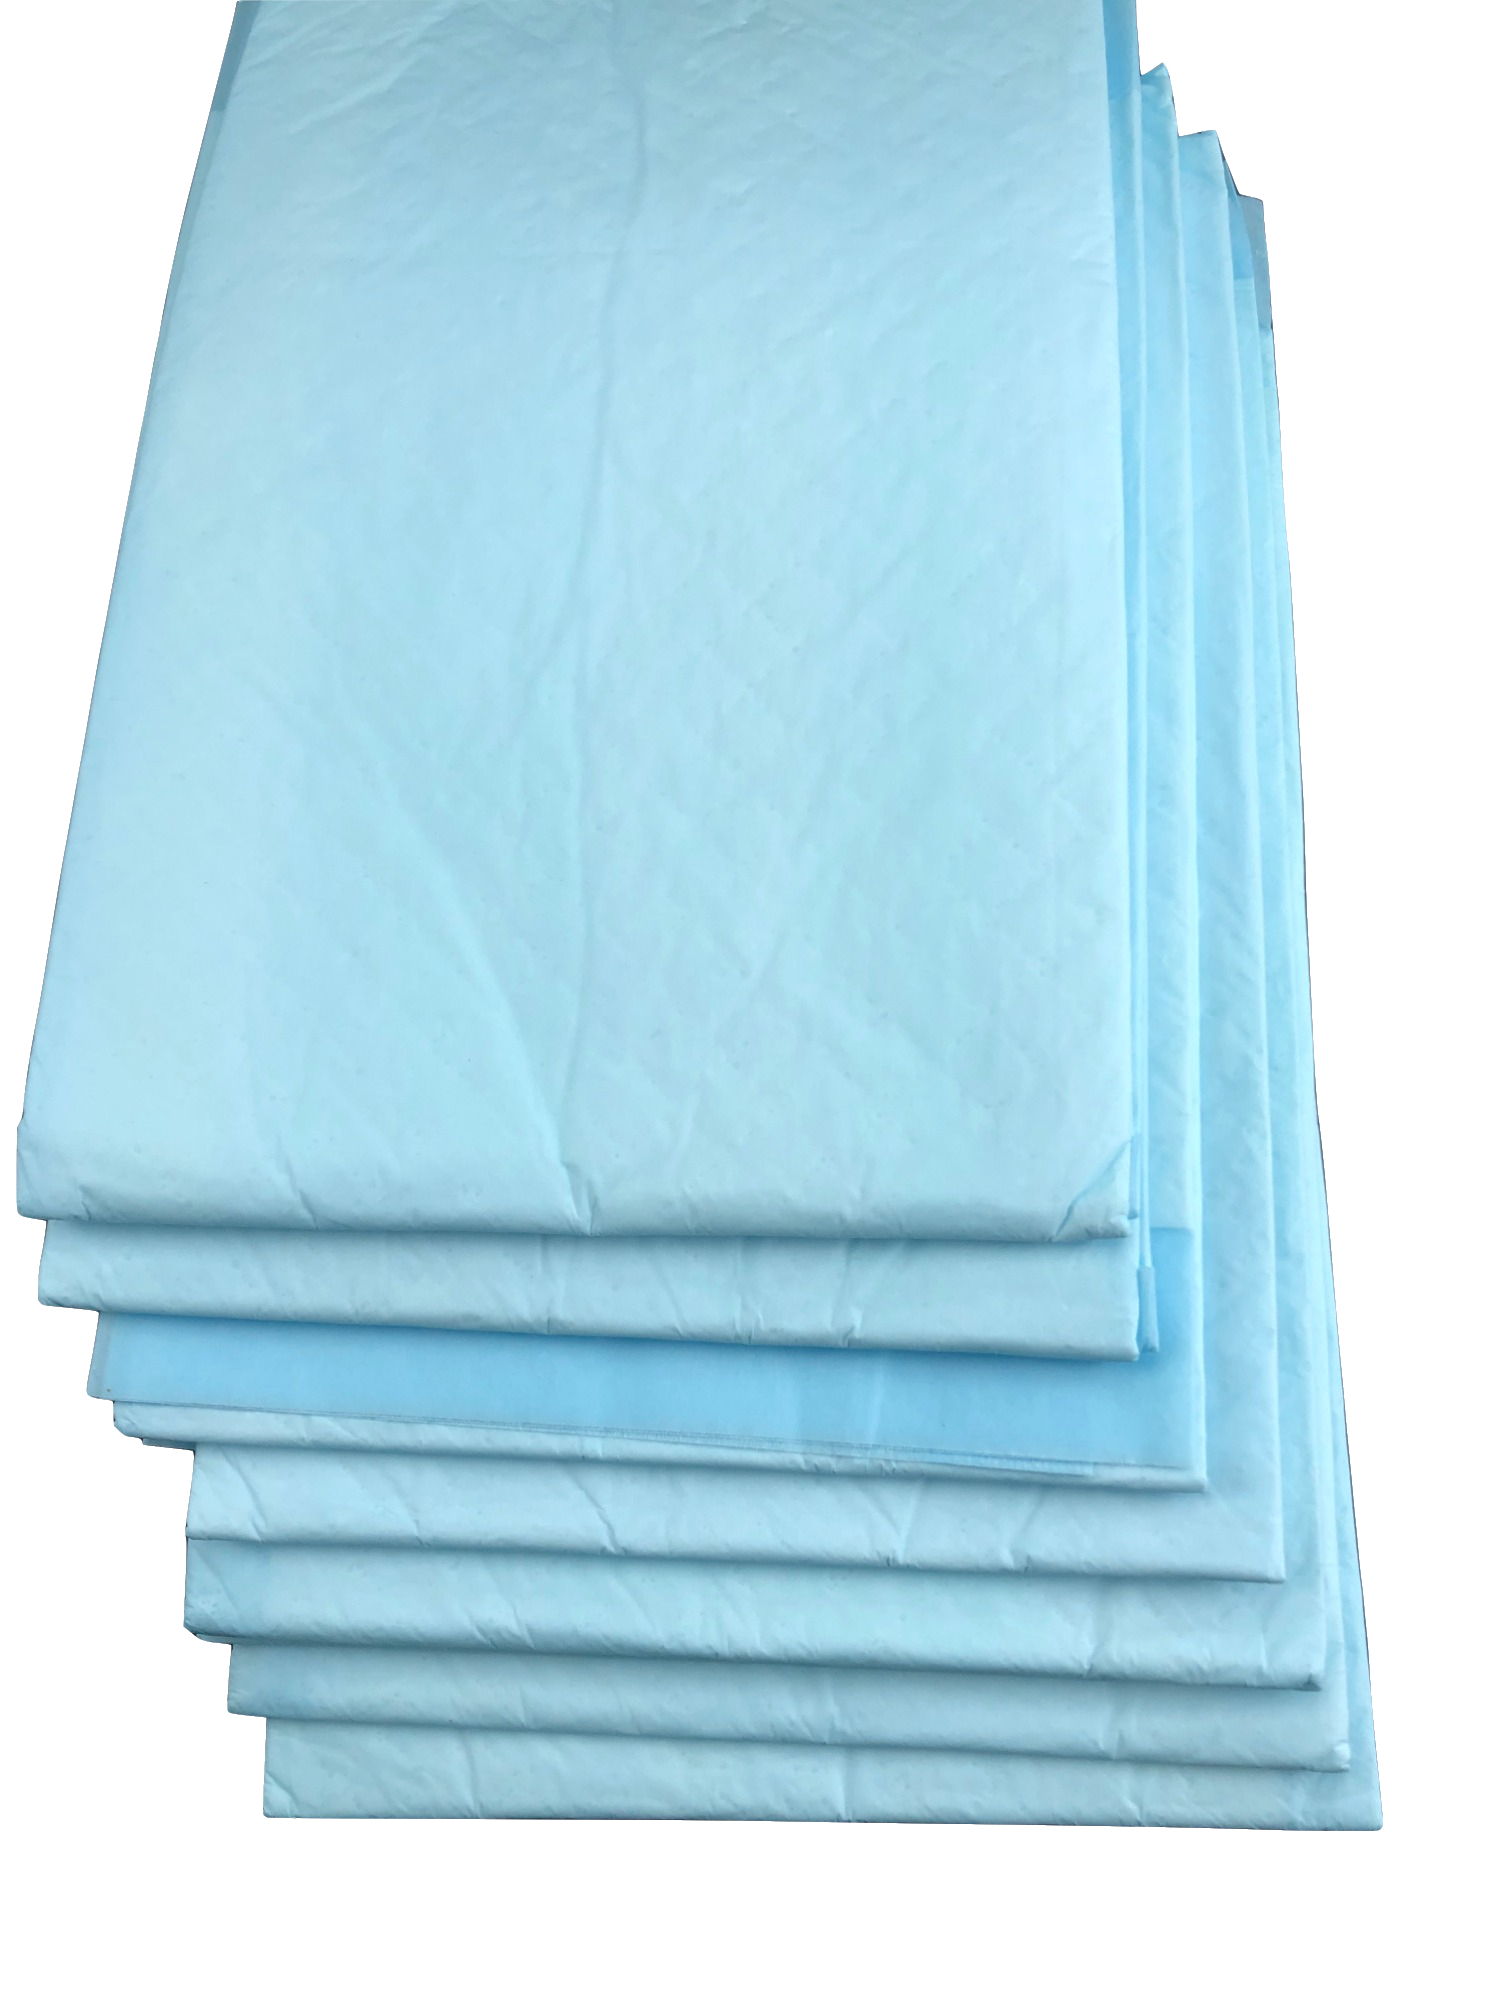 Waterproof plastic backed medical surgical incontinence underpad pads